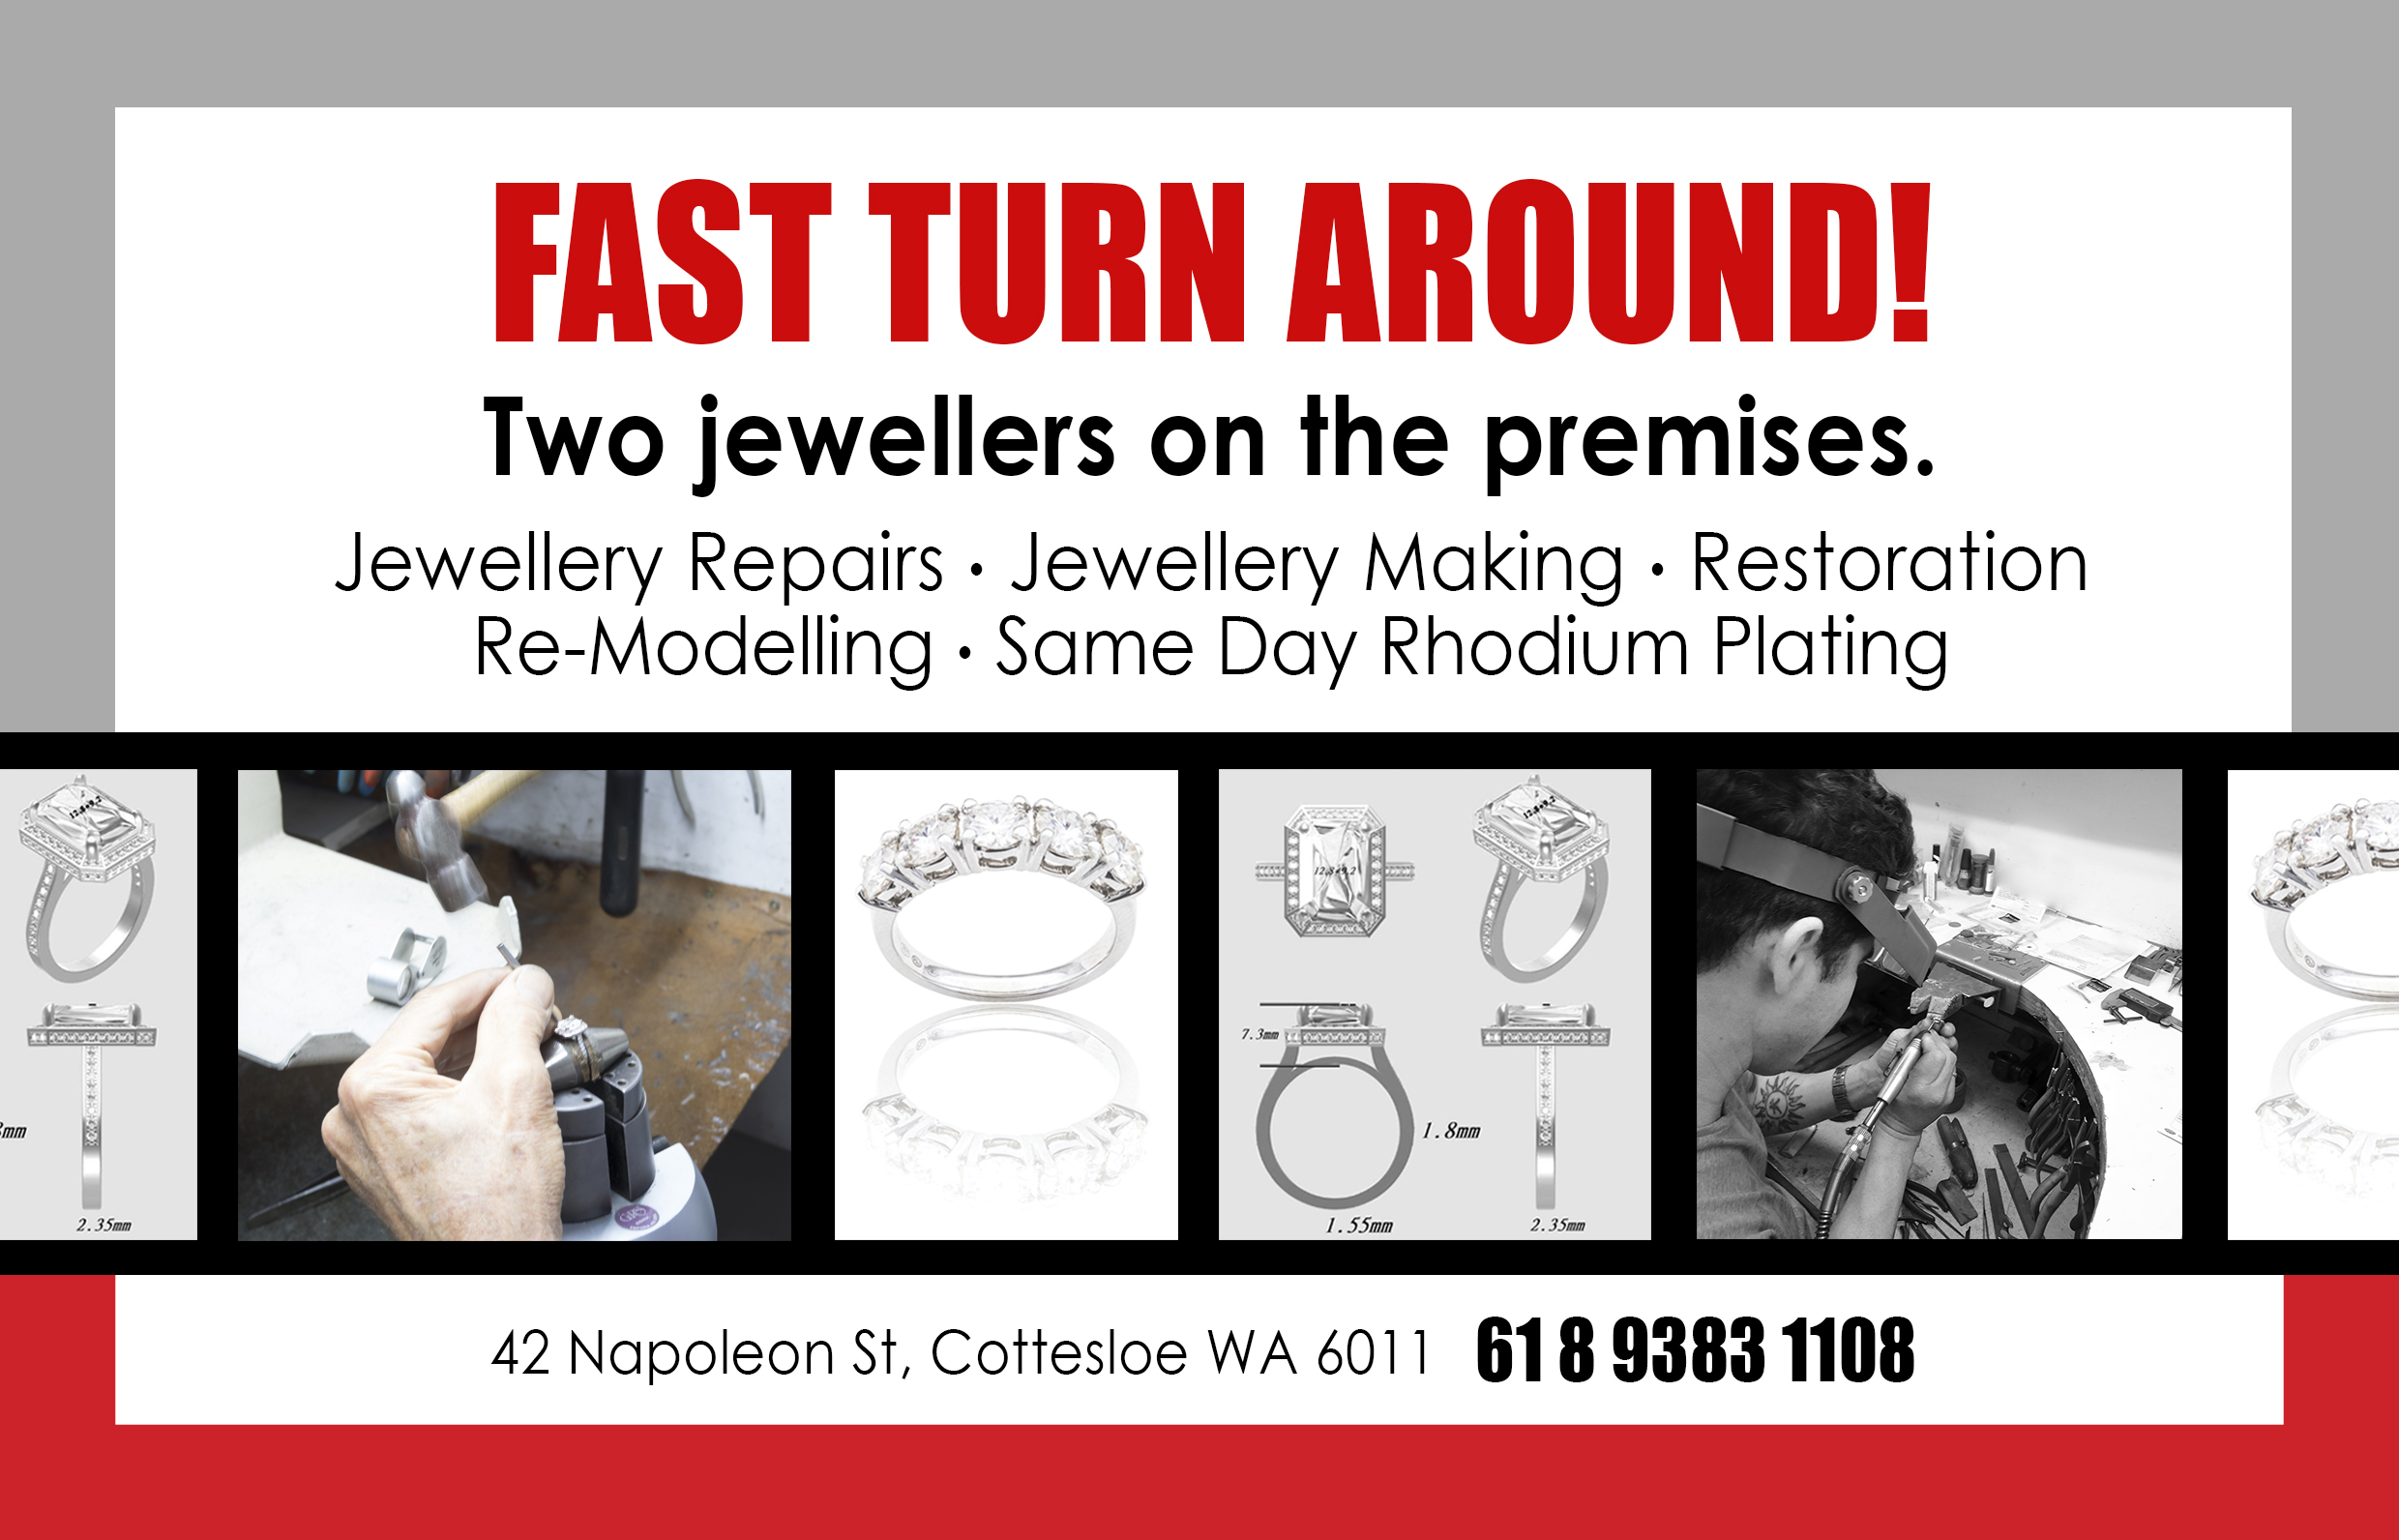 fast turn around REPAIR rhodium 2 jewellers FLYER A5 googlepost.jpg